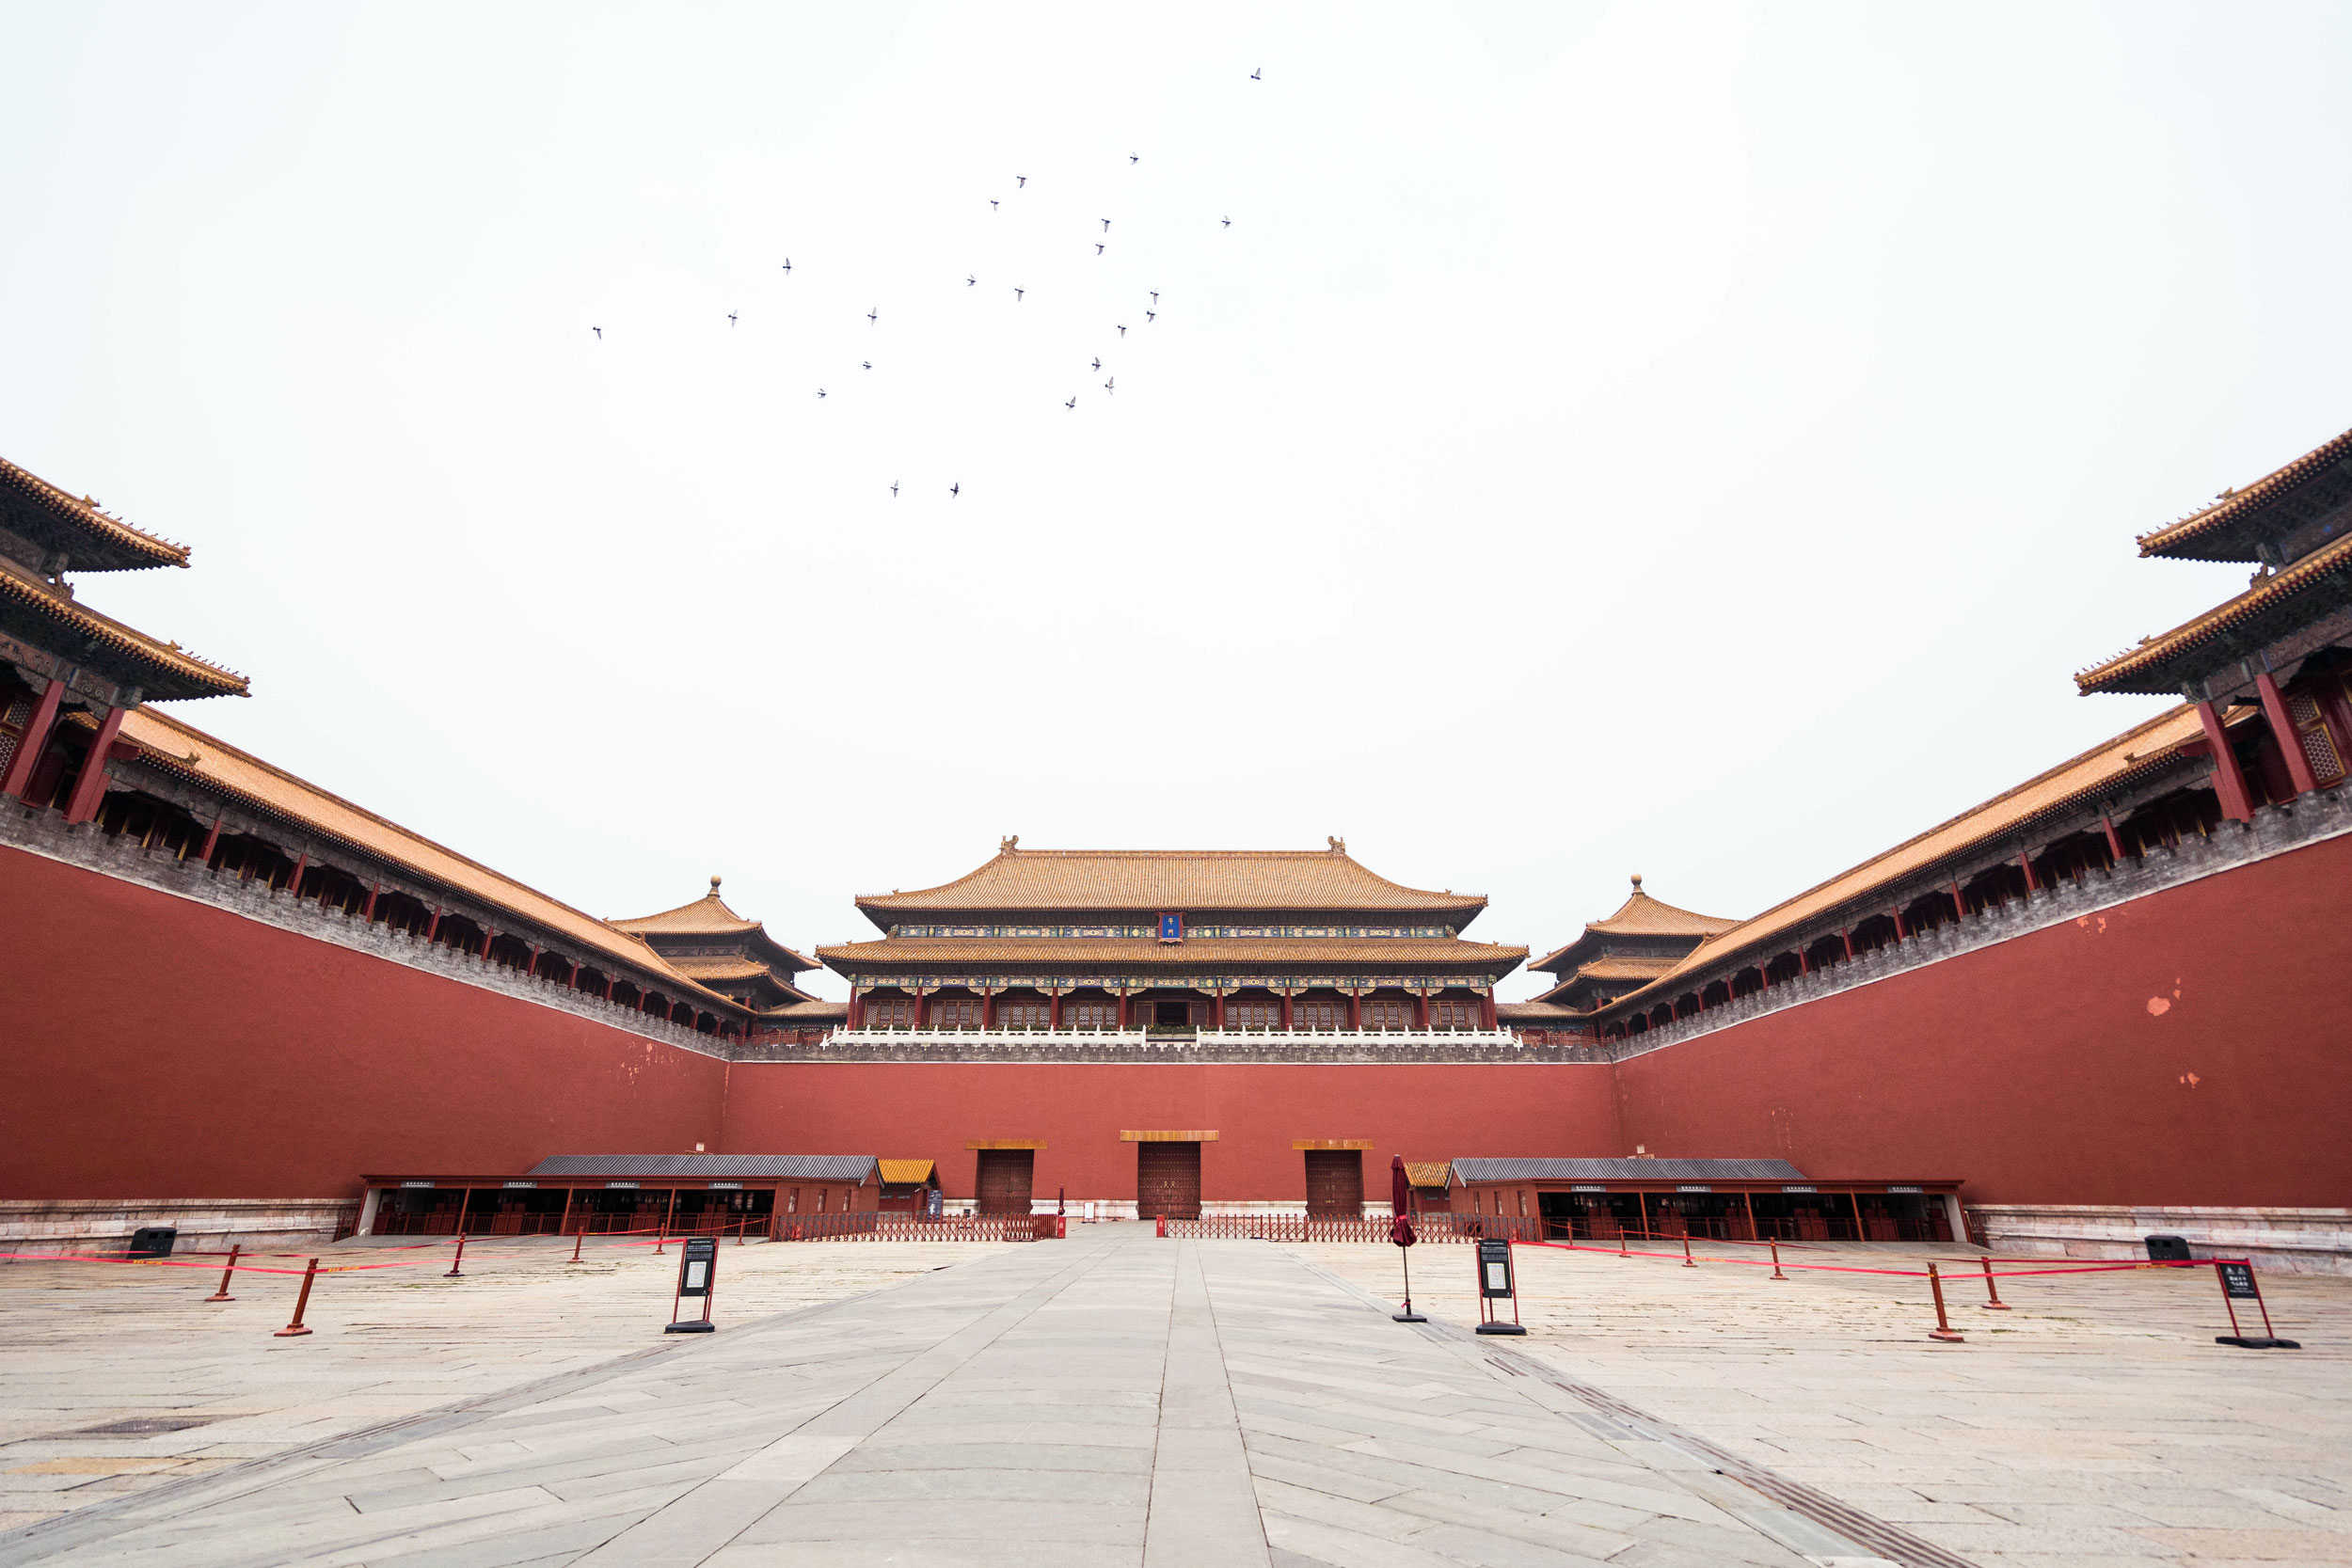 The Forbidden City, known as The Palace Museum